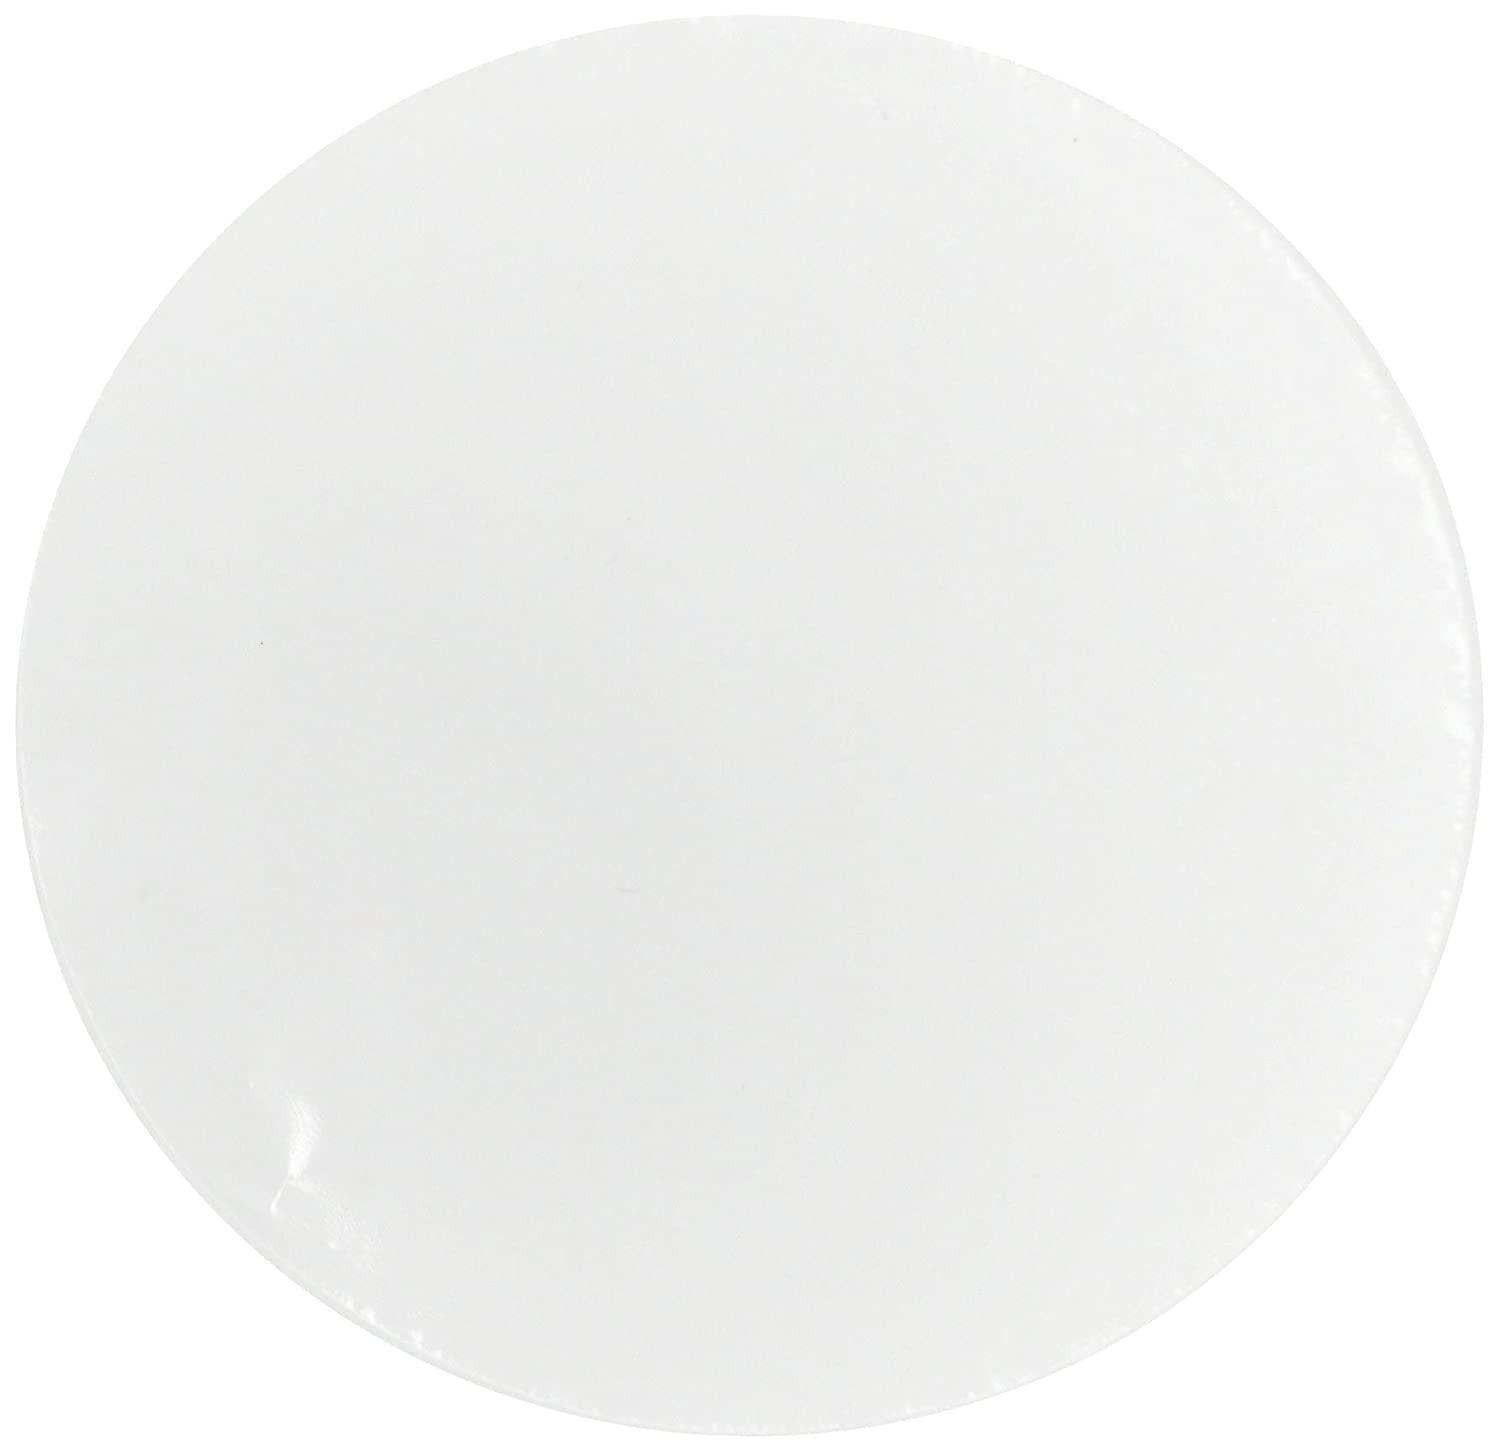 Pack of 100 10.0 Micron Whatman 111115 Polycarbonate Nuclepore Track-Etched Membrane Filter 47mm Diameter